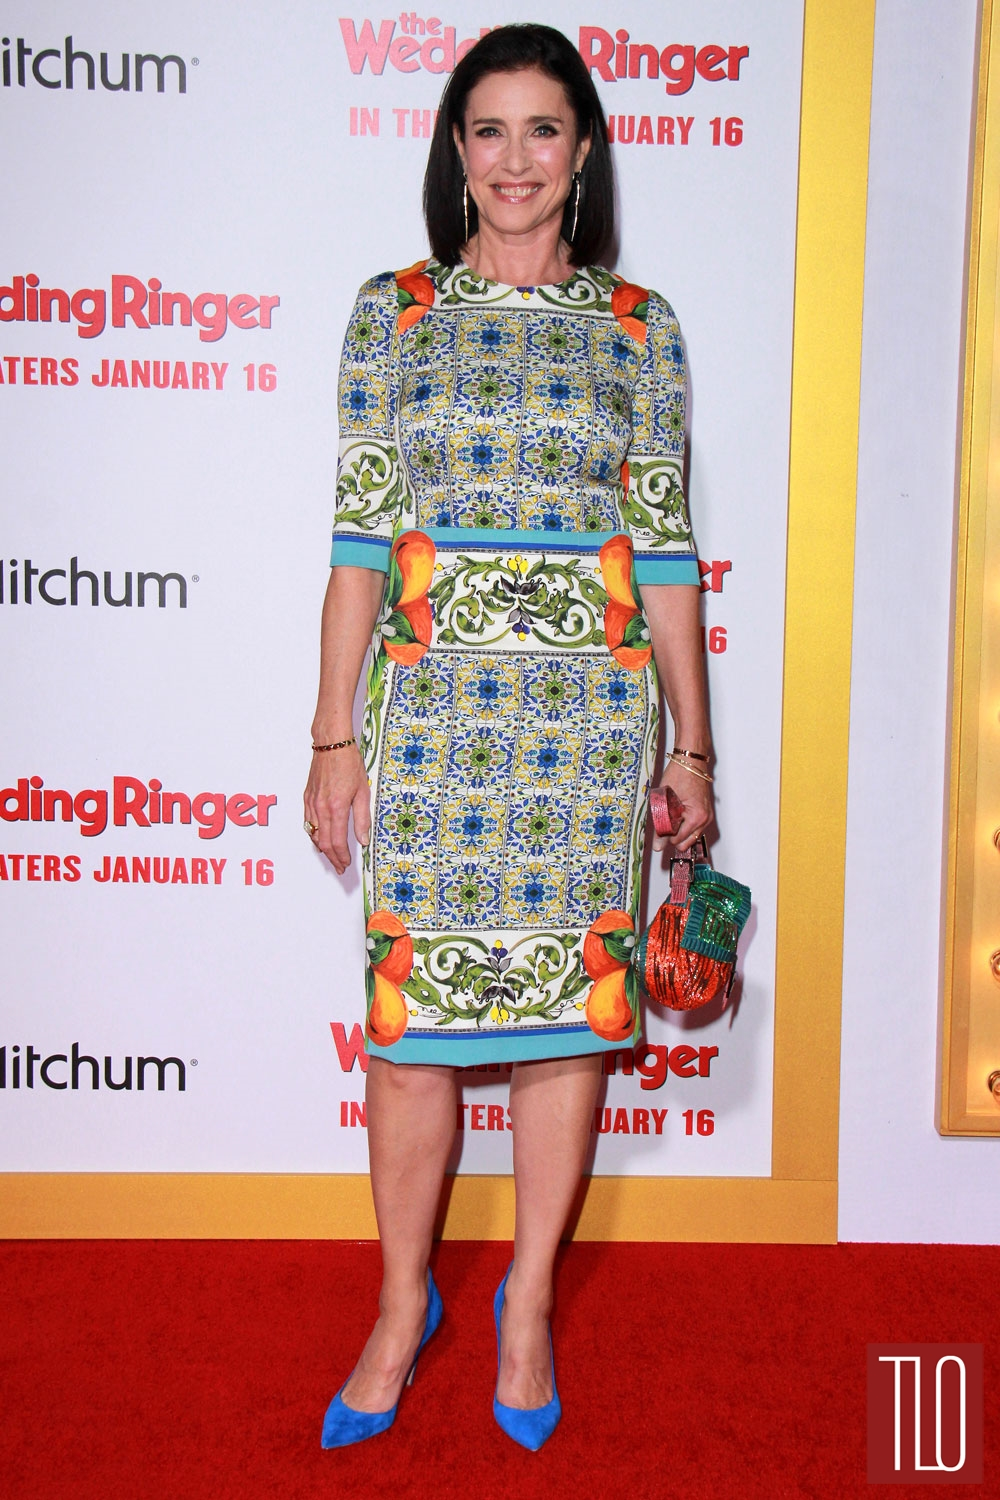 Mimi-Rogers-The-Wedding-Ringer-Los-Angeles-Movie-Premiere-Red-Carpet-Fashion-Dolce-Gabbana-Tom-Lorenzo-Site-TLO (1)